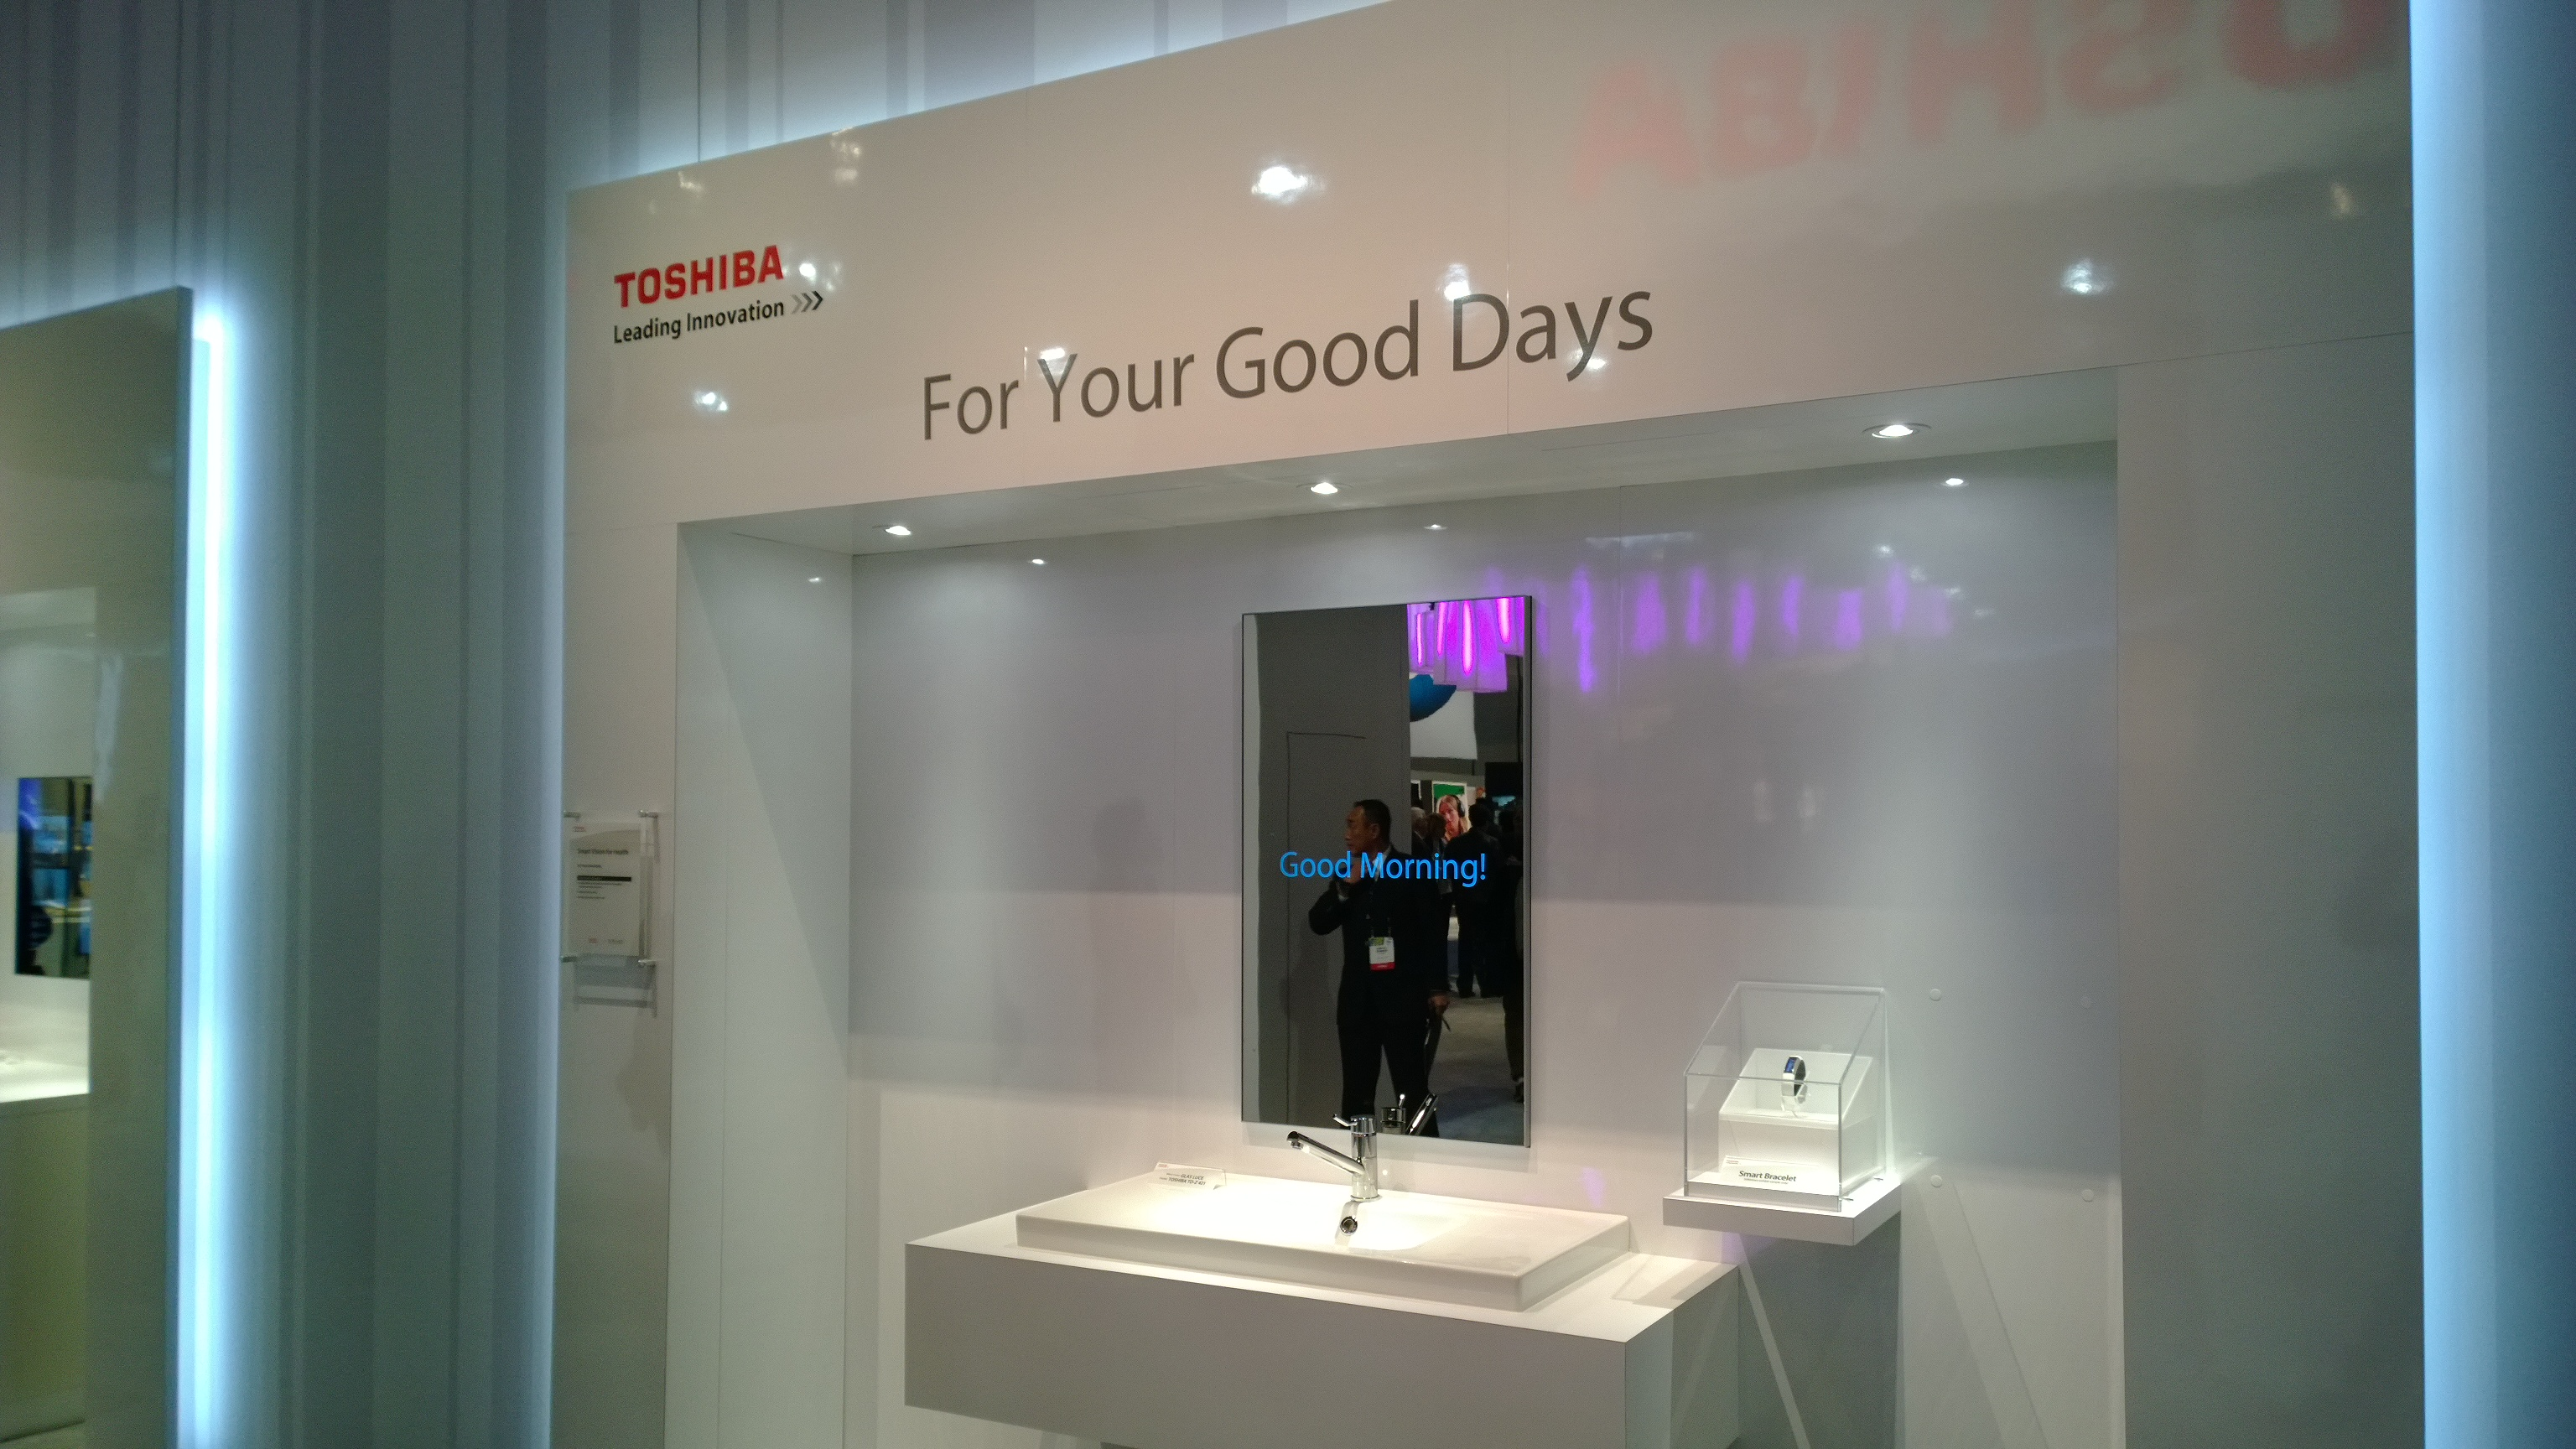 Toshiba Smart Mirror 2